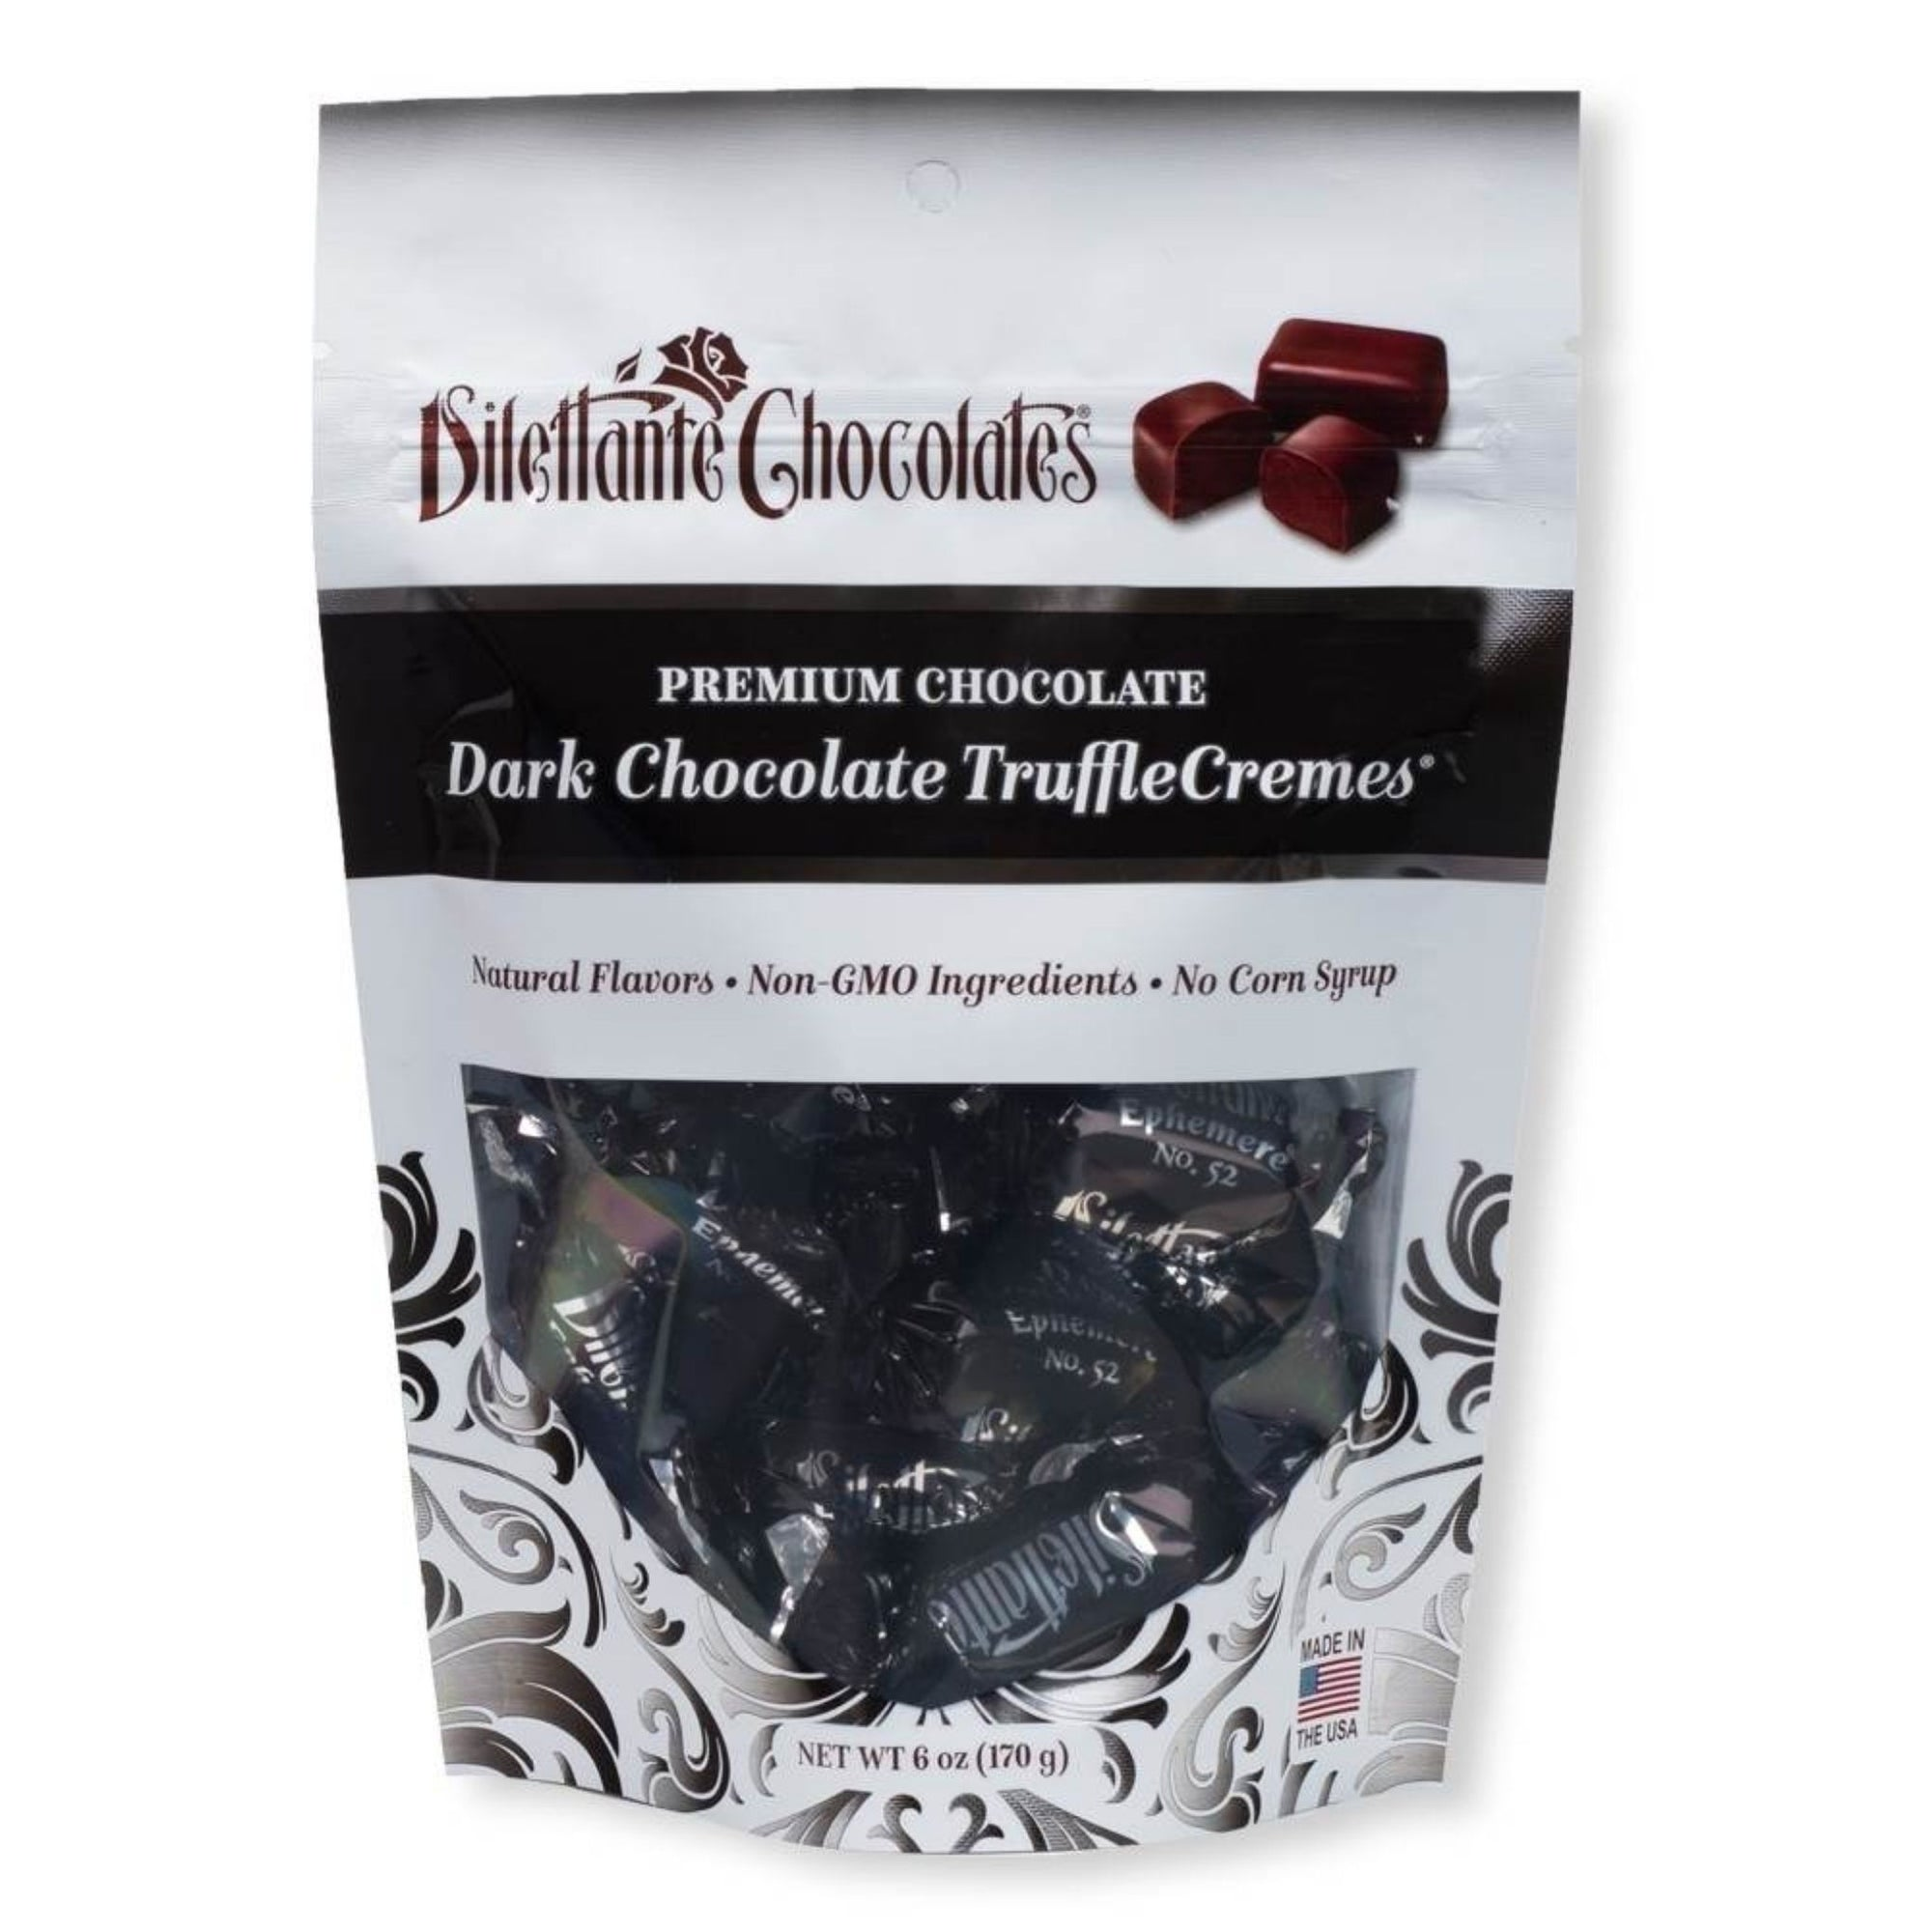 Dilettante Chocolates Premium Chocolate Dark Chocolate TruffleCremes with natural Flavors, Non-GMO Ingredients, and No Corn Syrup